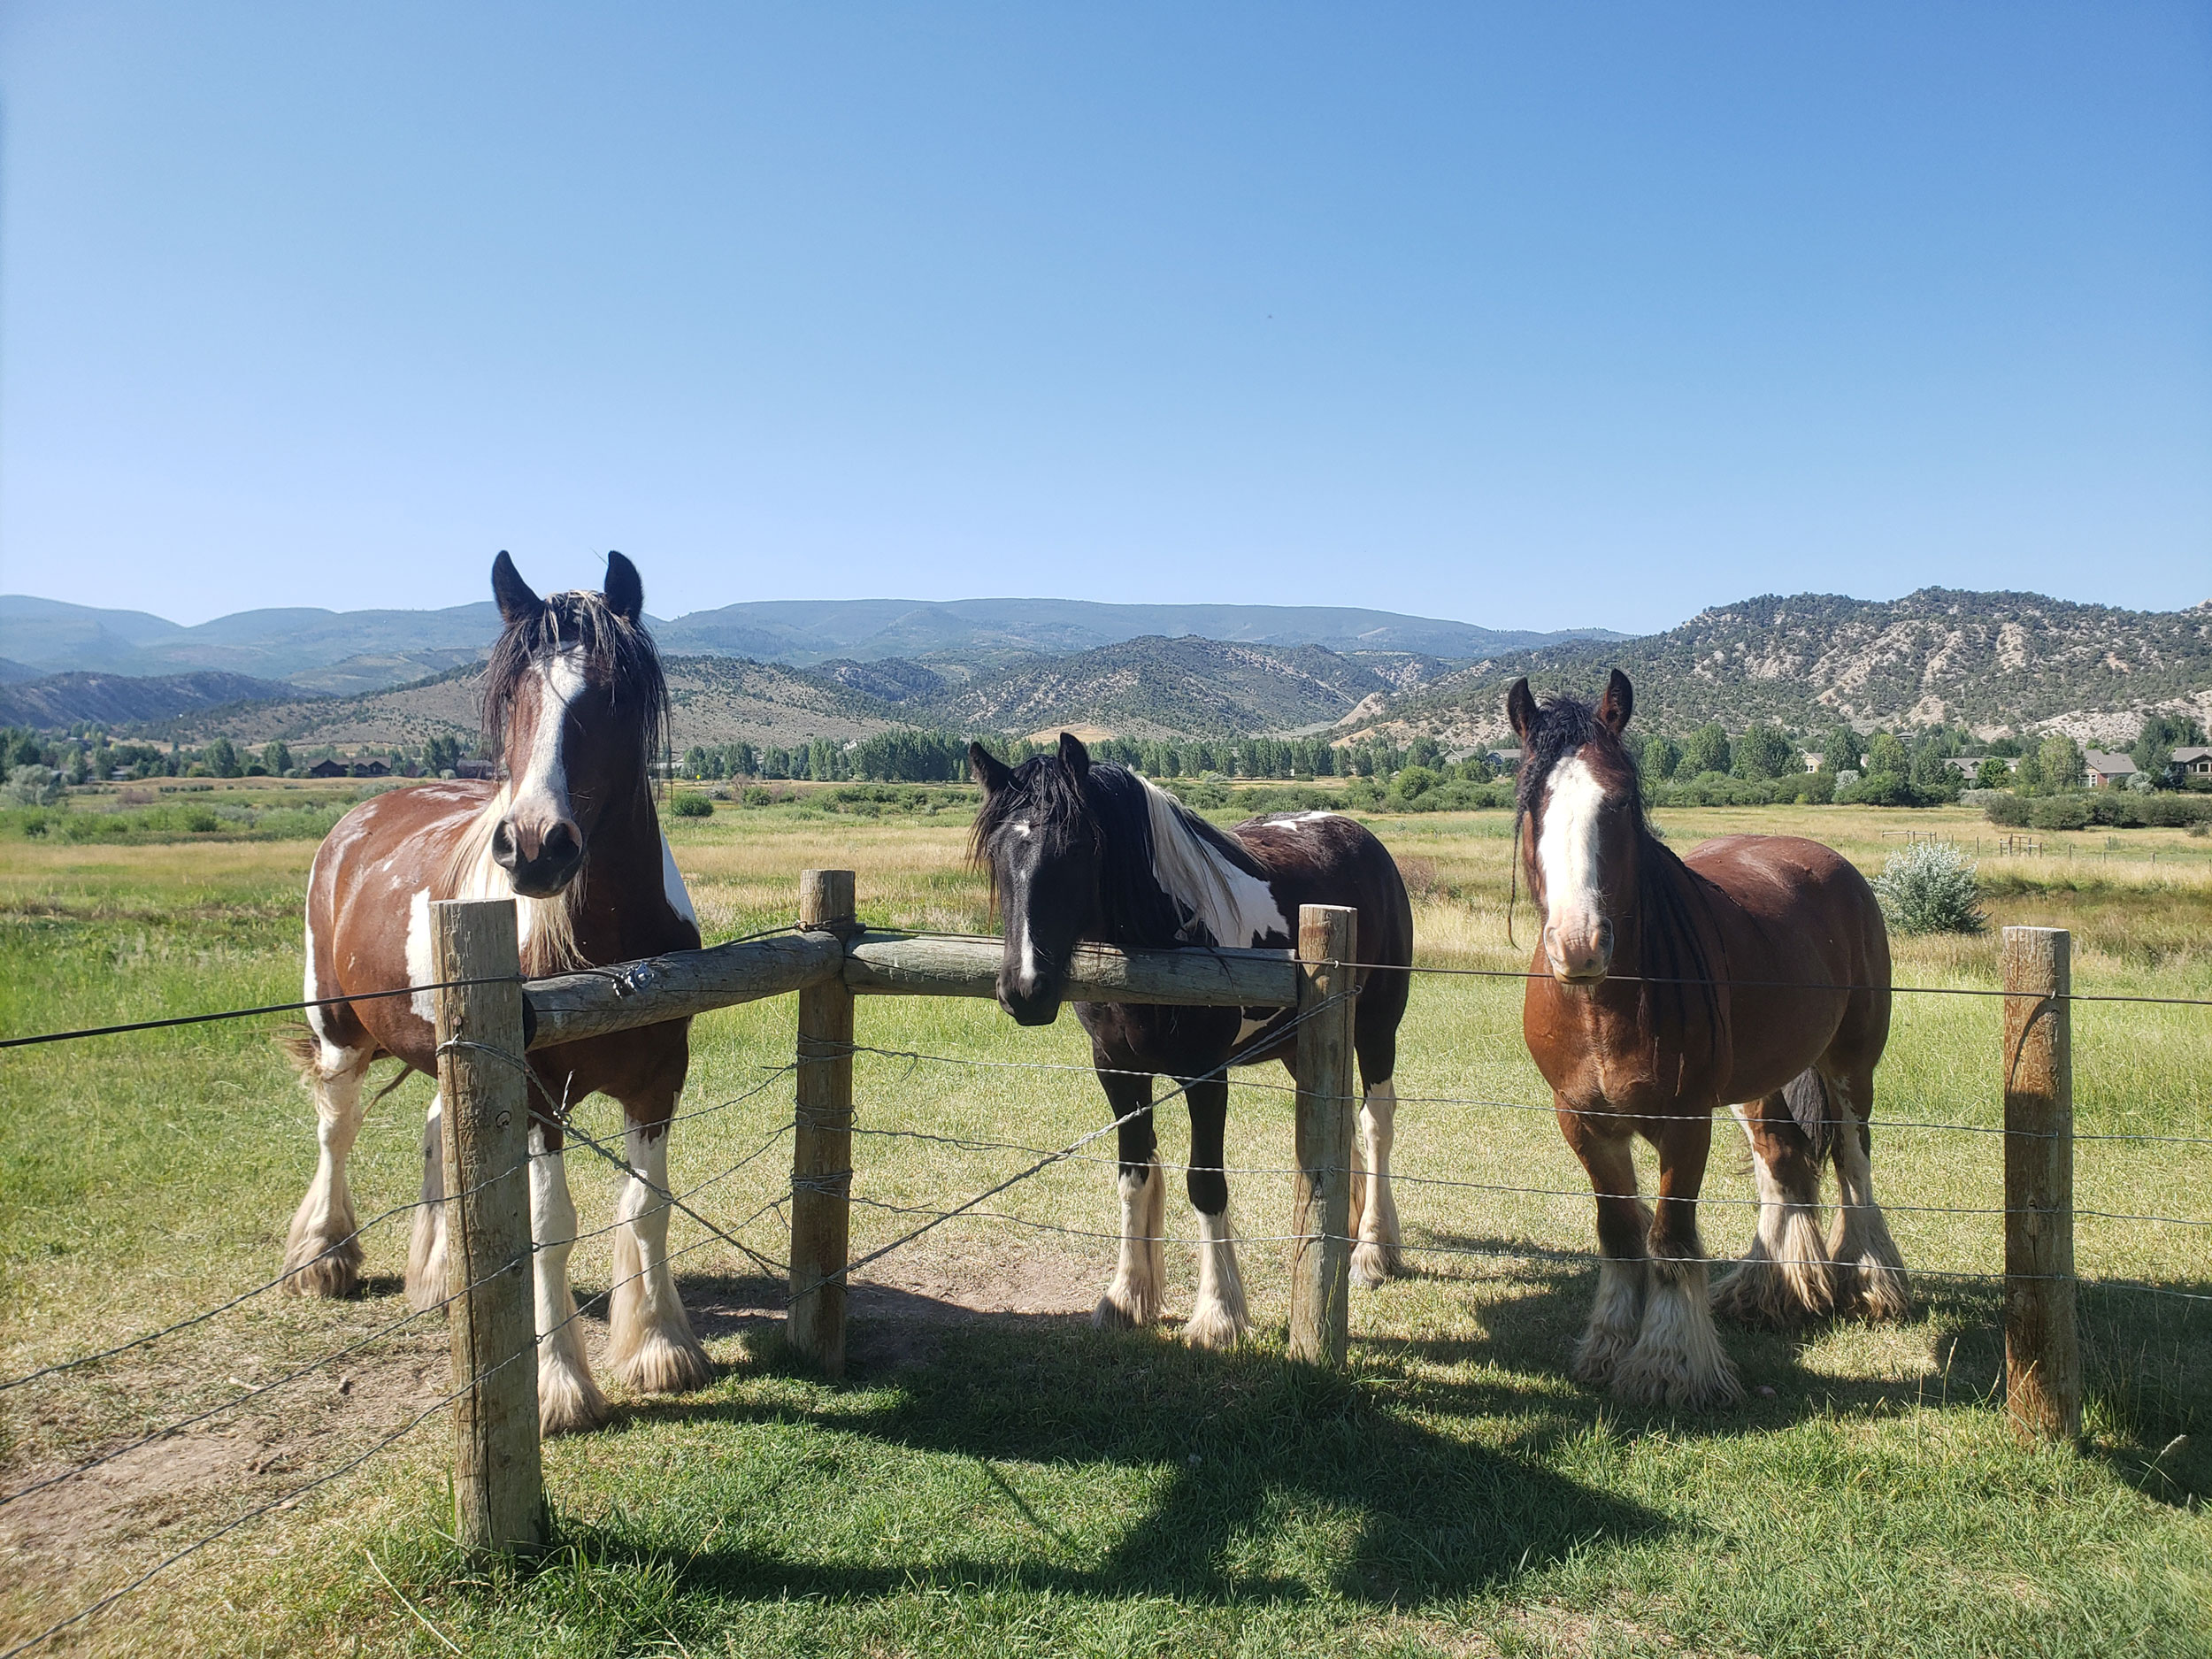 Horses at th fence